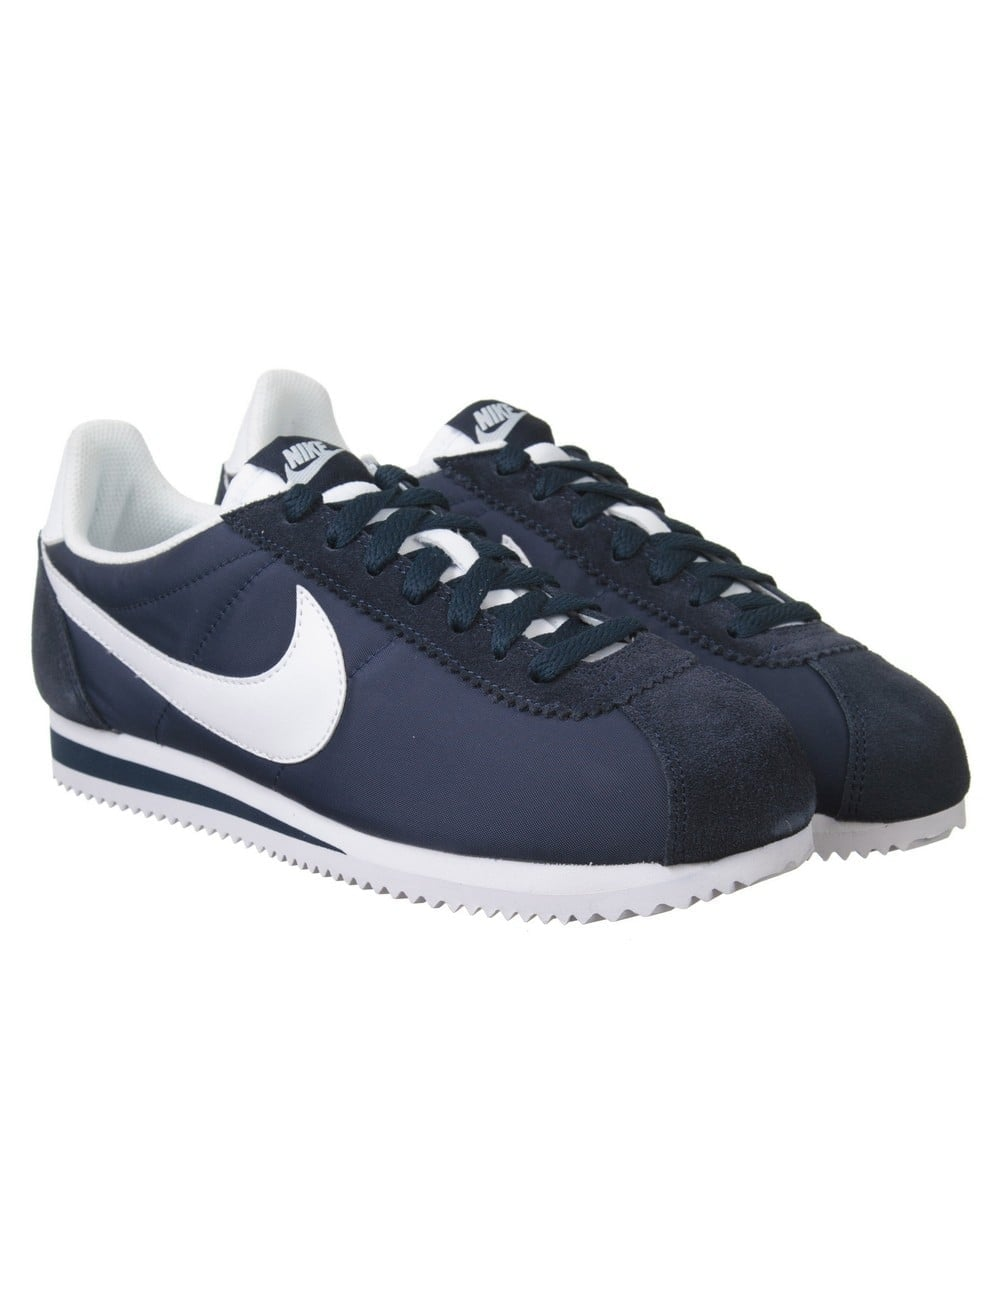 check out 46068 a0747 Nike Classic Cortez NY Shoes - Obsidian